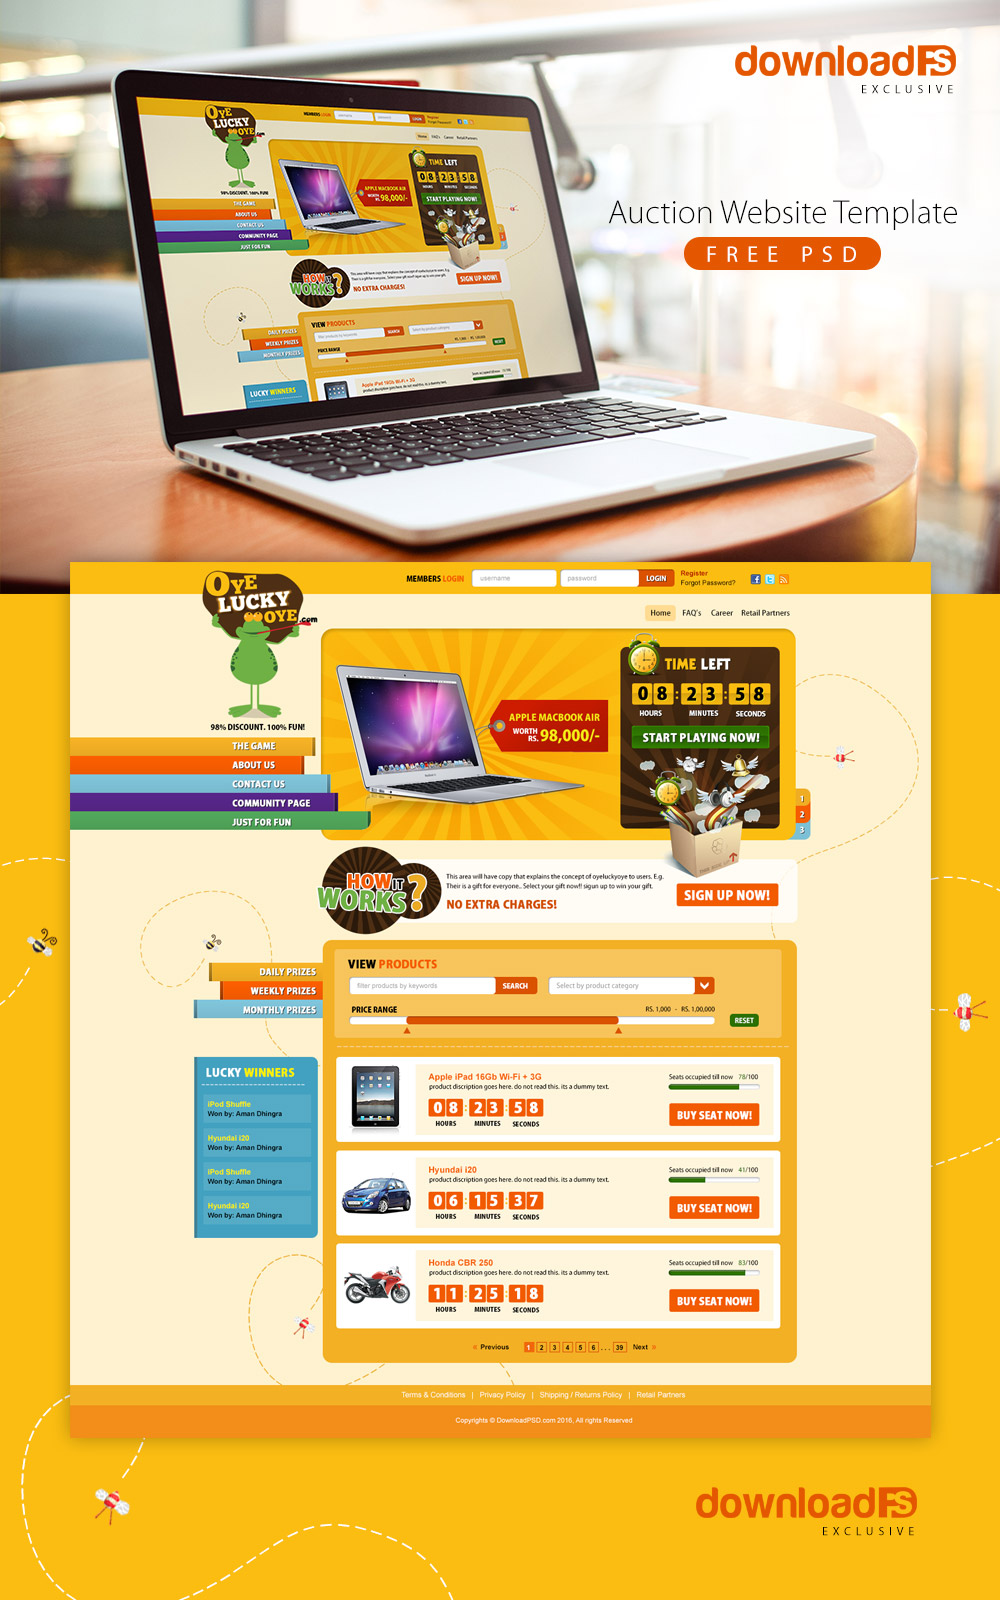 Auction Website Template Free